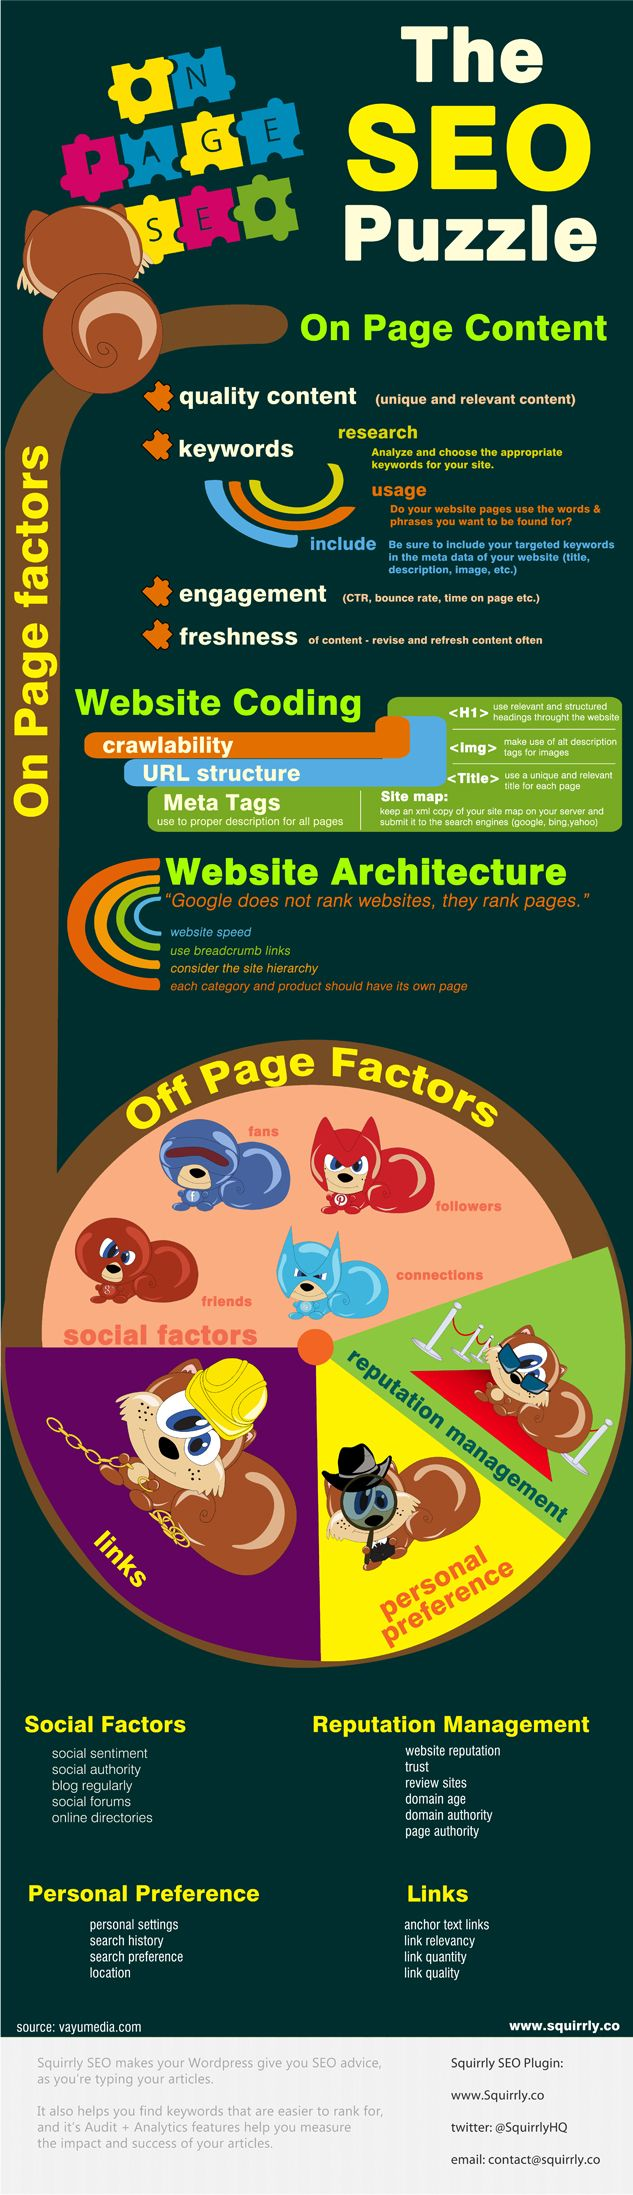 The SEO Puzzle: On Page SEO for Content [Infographic].